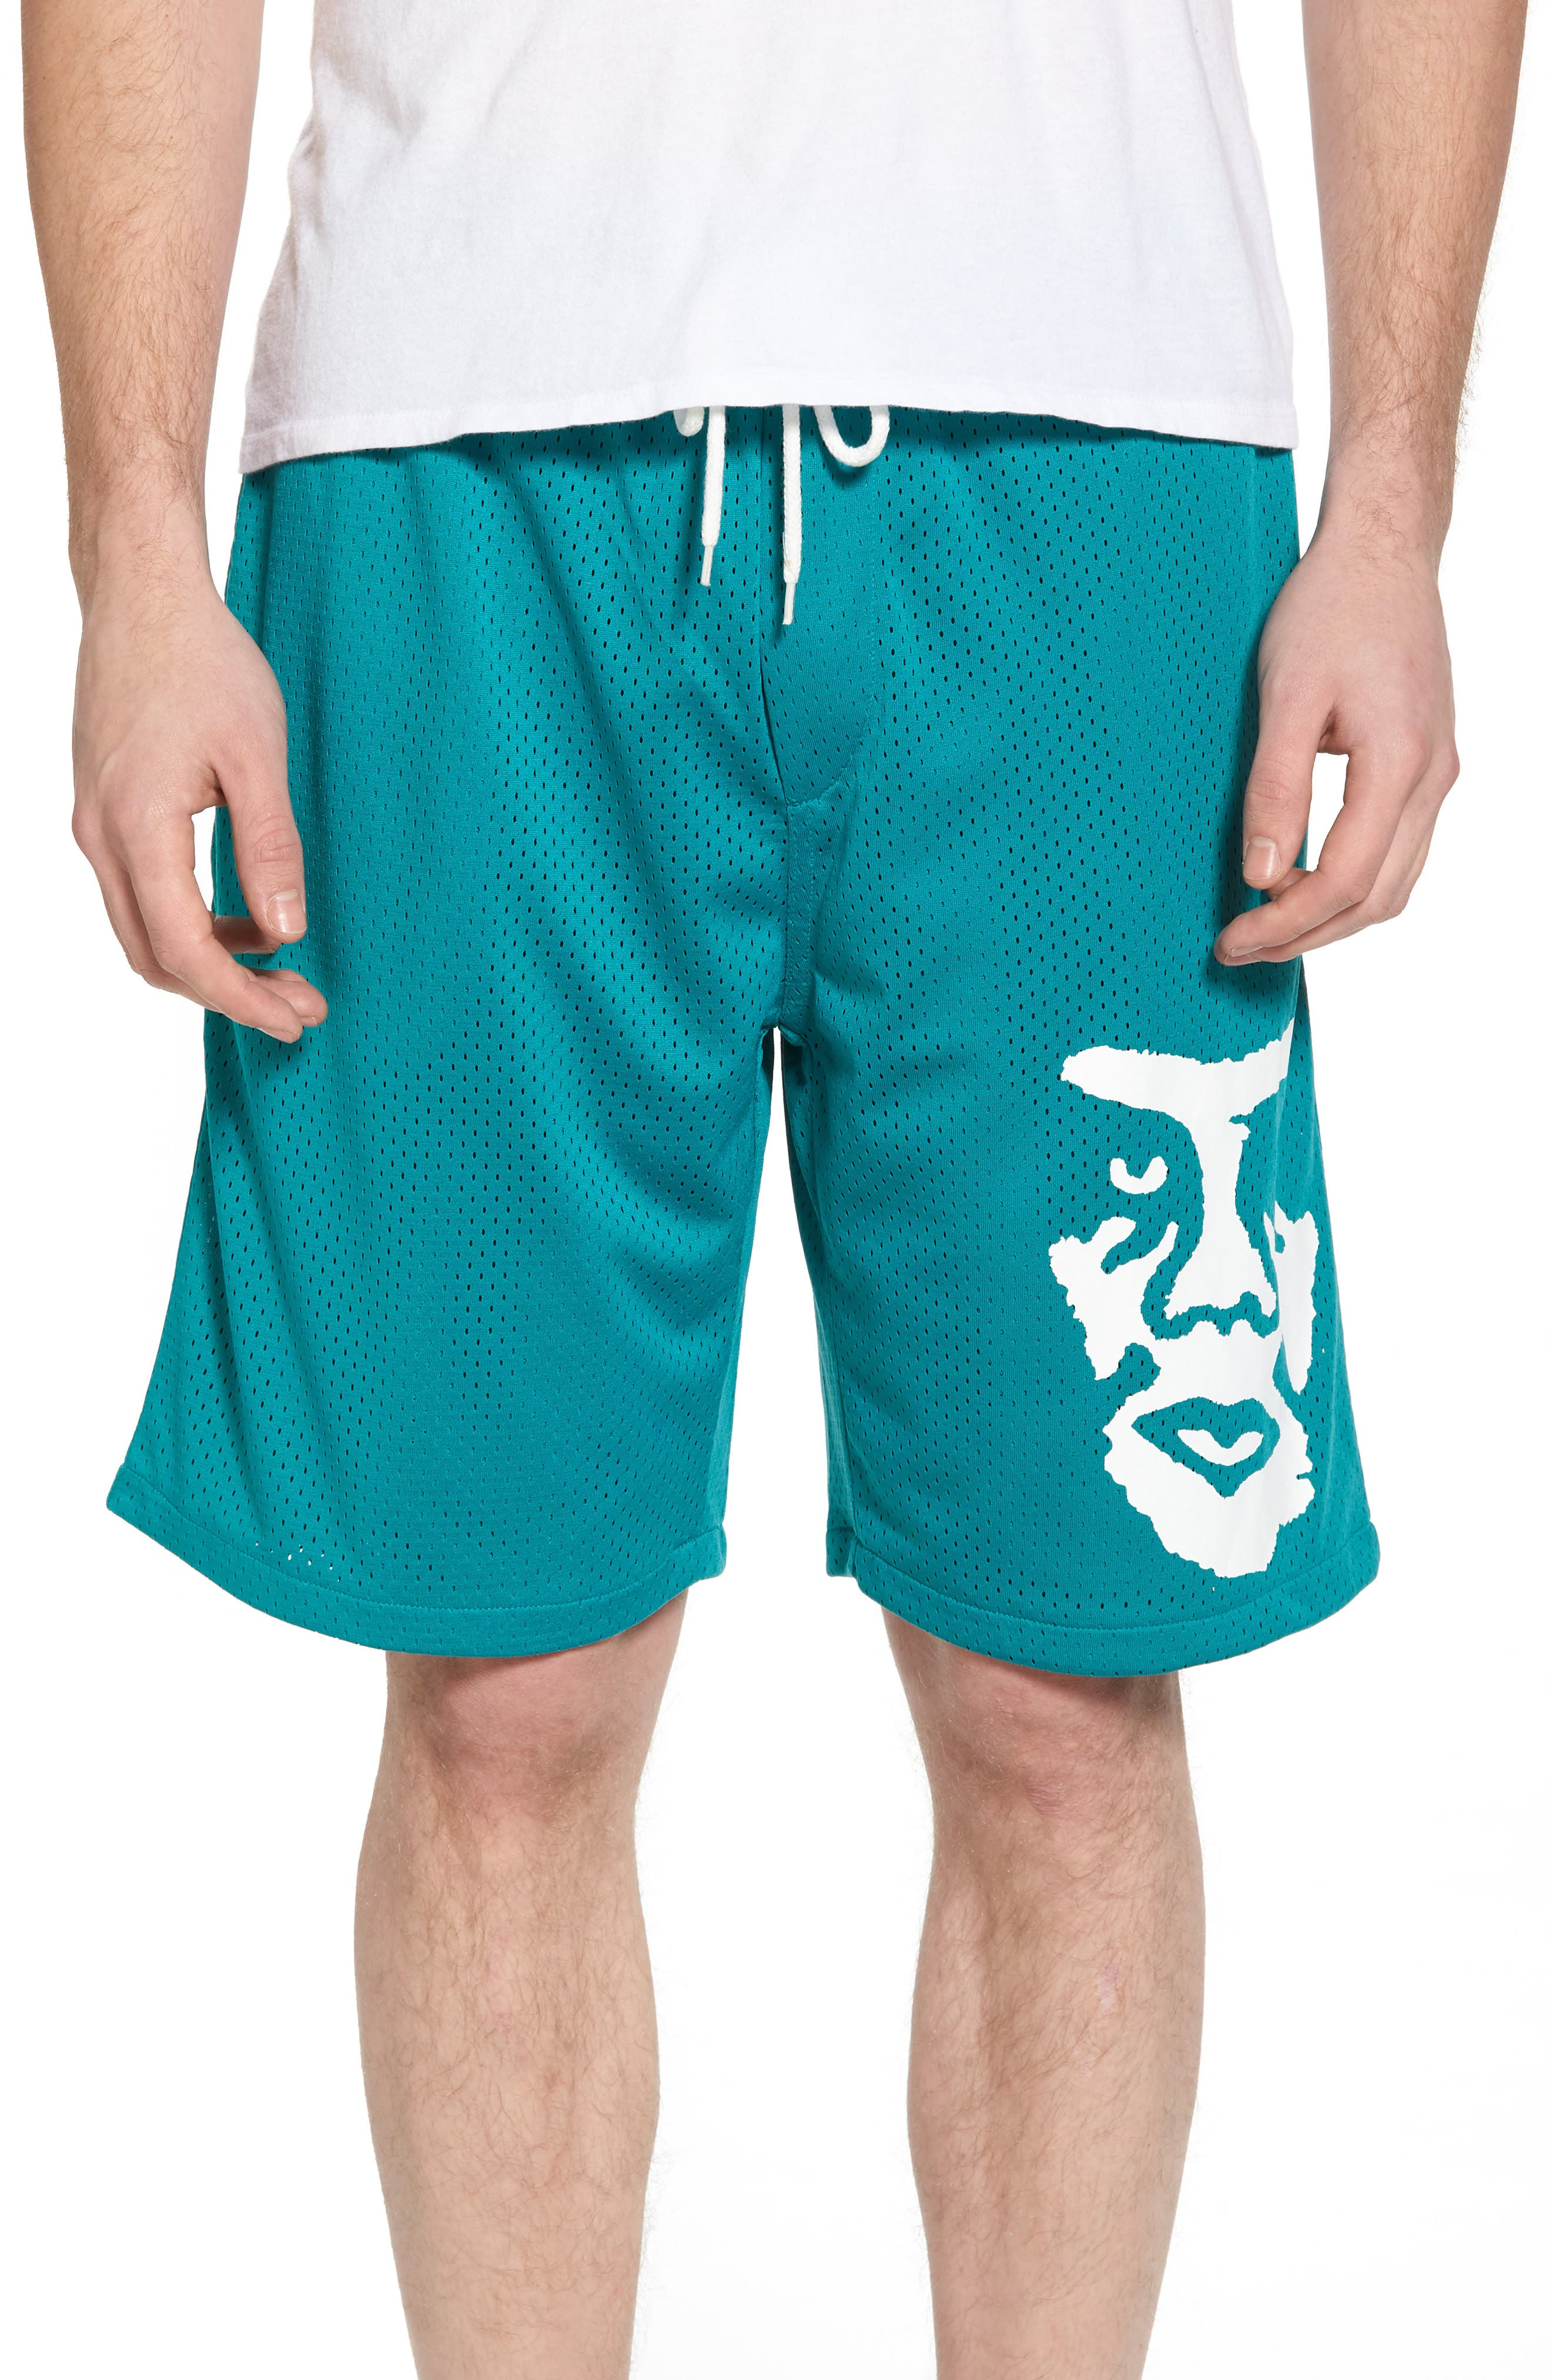 Obey O.P.E. Athletic Shorts